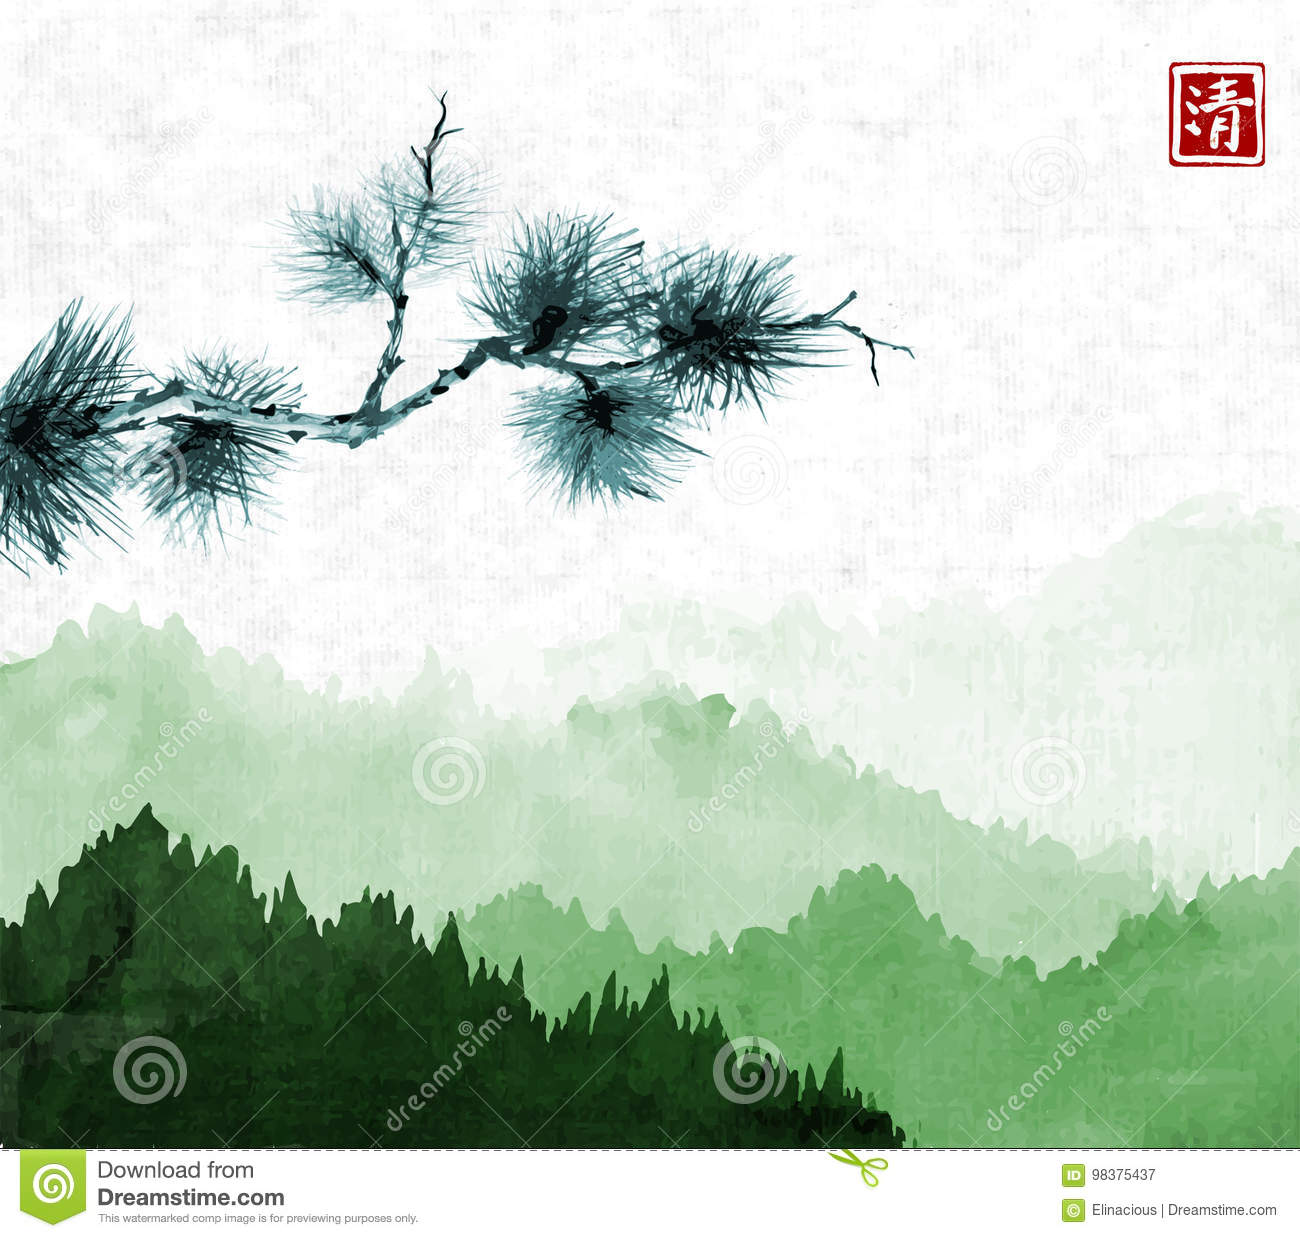 Pine tree branch an green mountains with forest trees in fog on rice paper background. Hieroglyph - clarity. Traditional